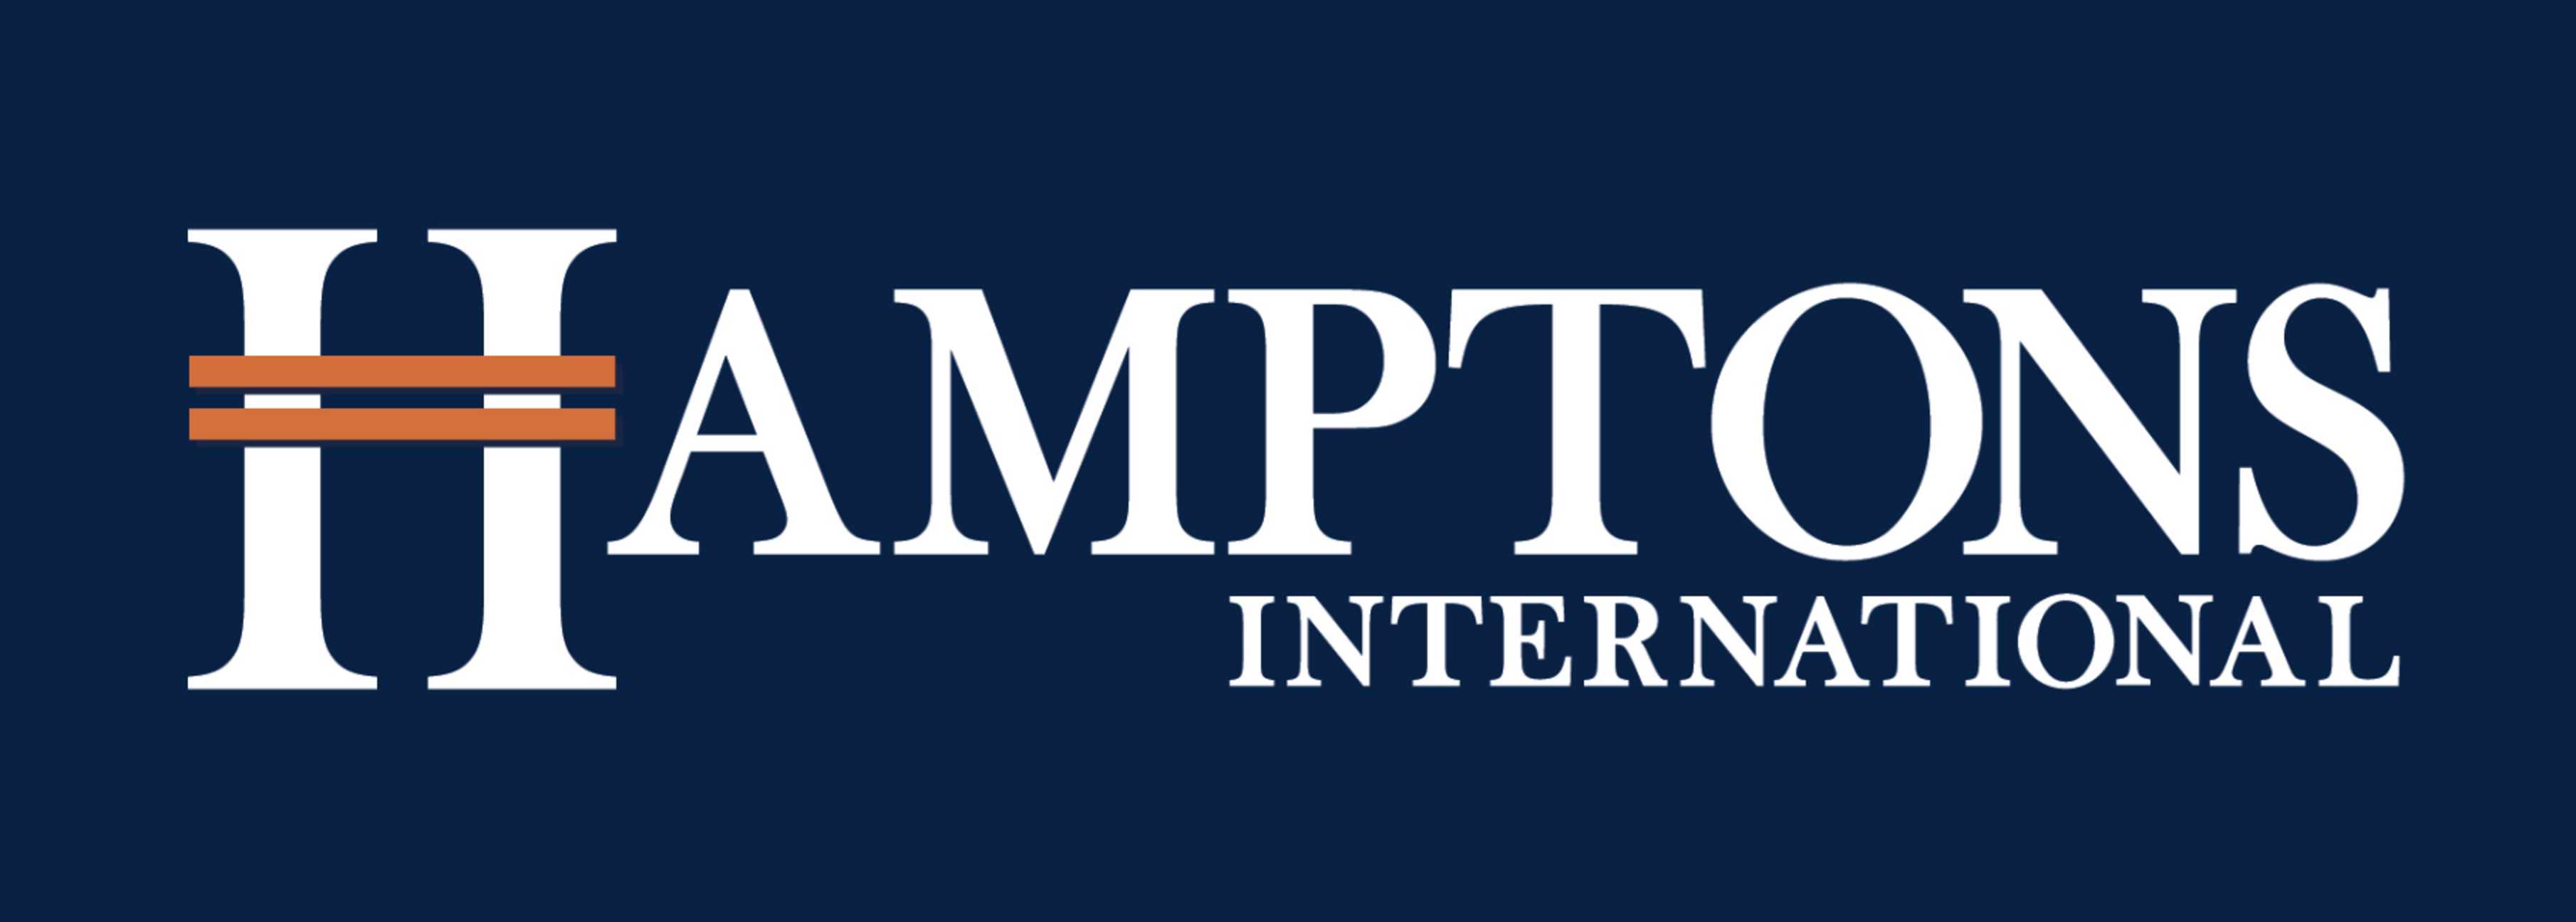 Hamptons International